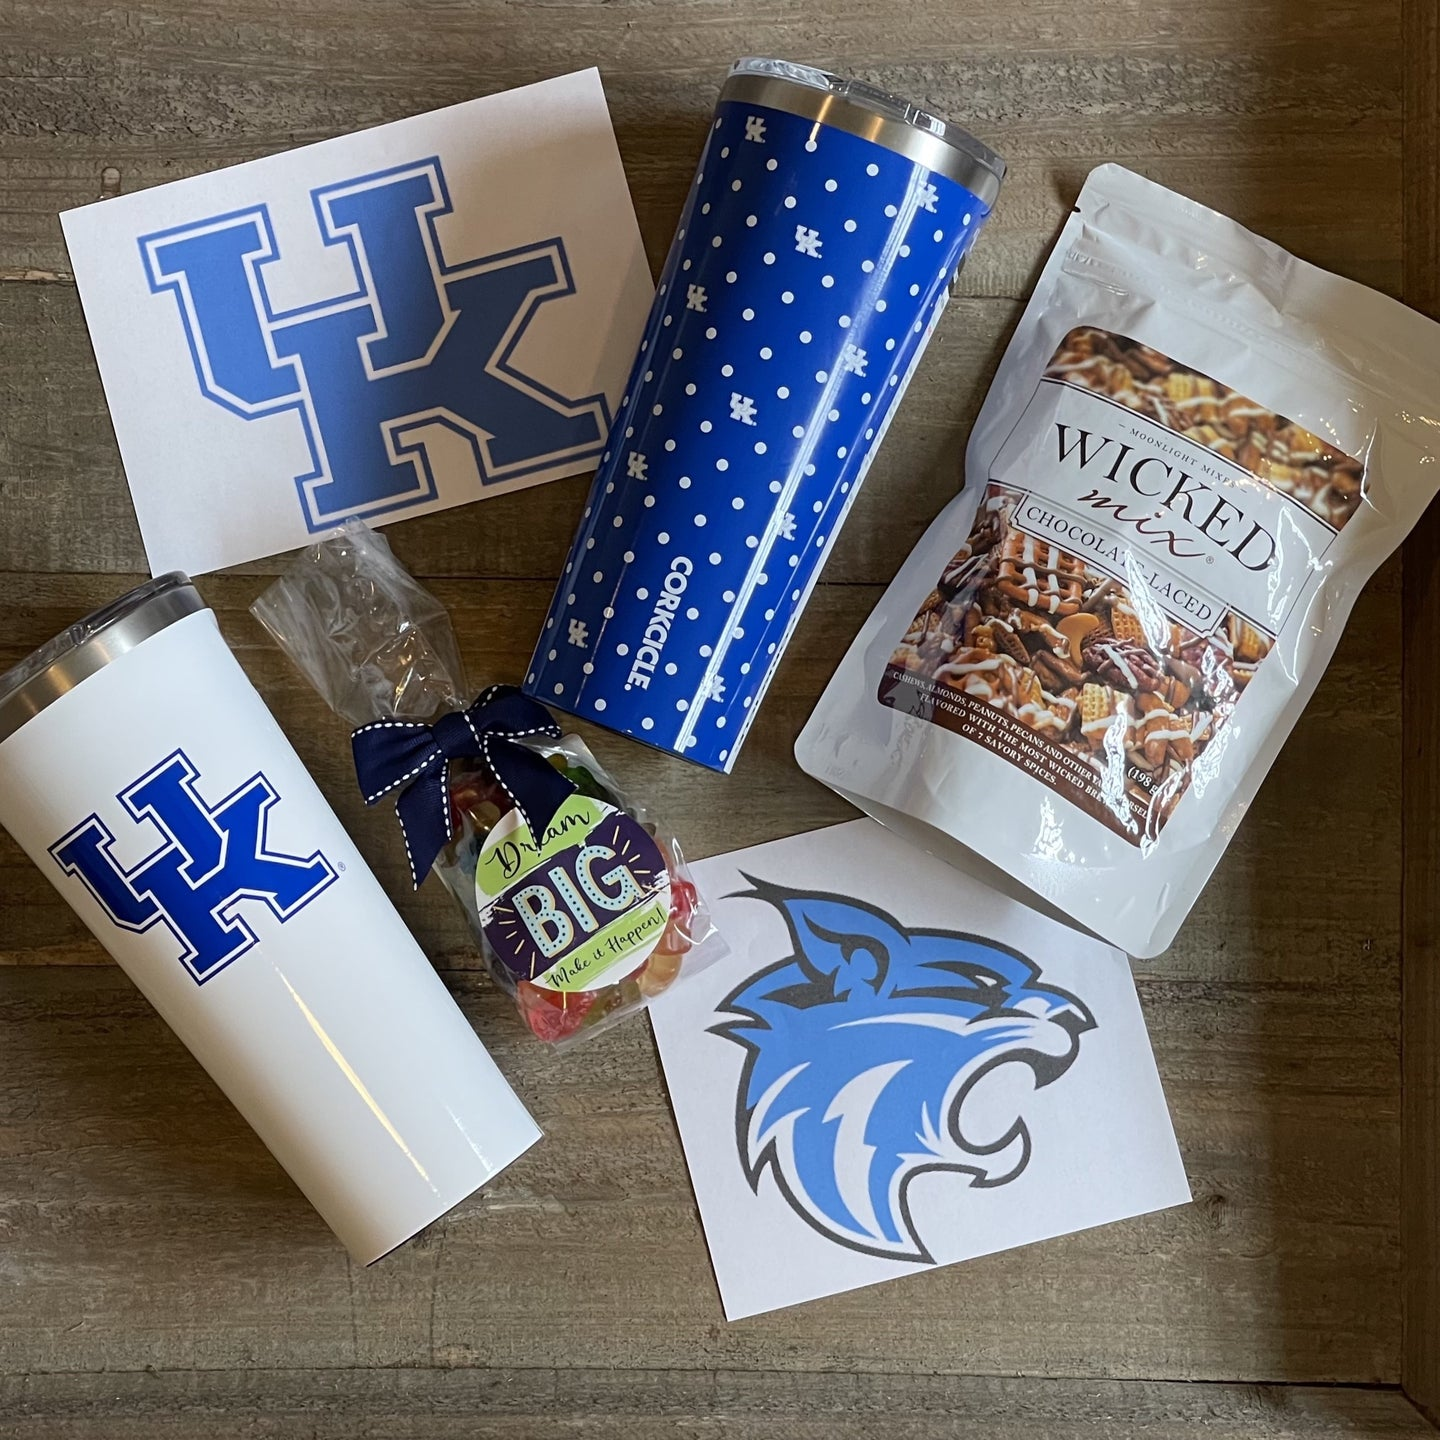 This Box Includes:  Corckcicle 24 oz. Tumbler With UK Logo or Polka Dot Oh Sugar 5 oz. Bag of Gummy Bears Wicked Mix (Original or Chocolate)